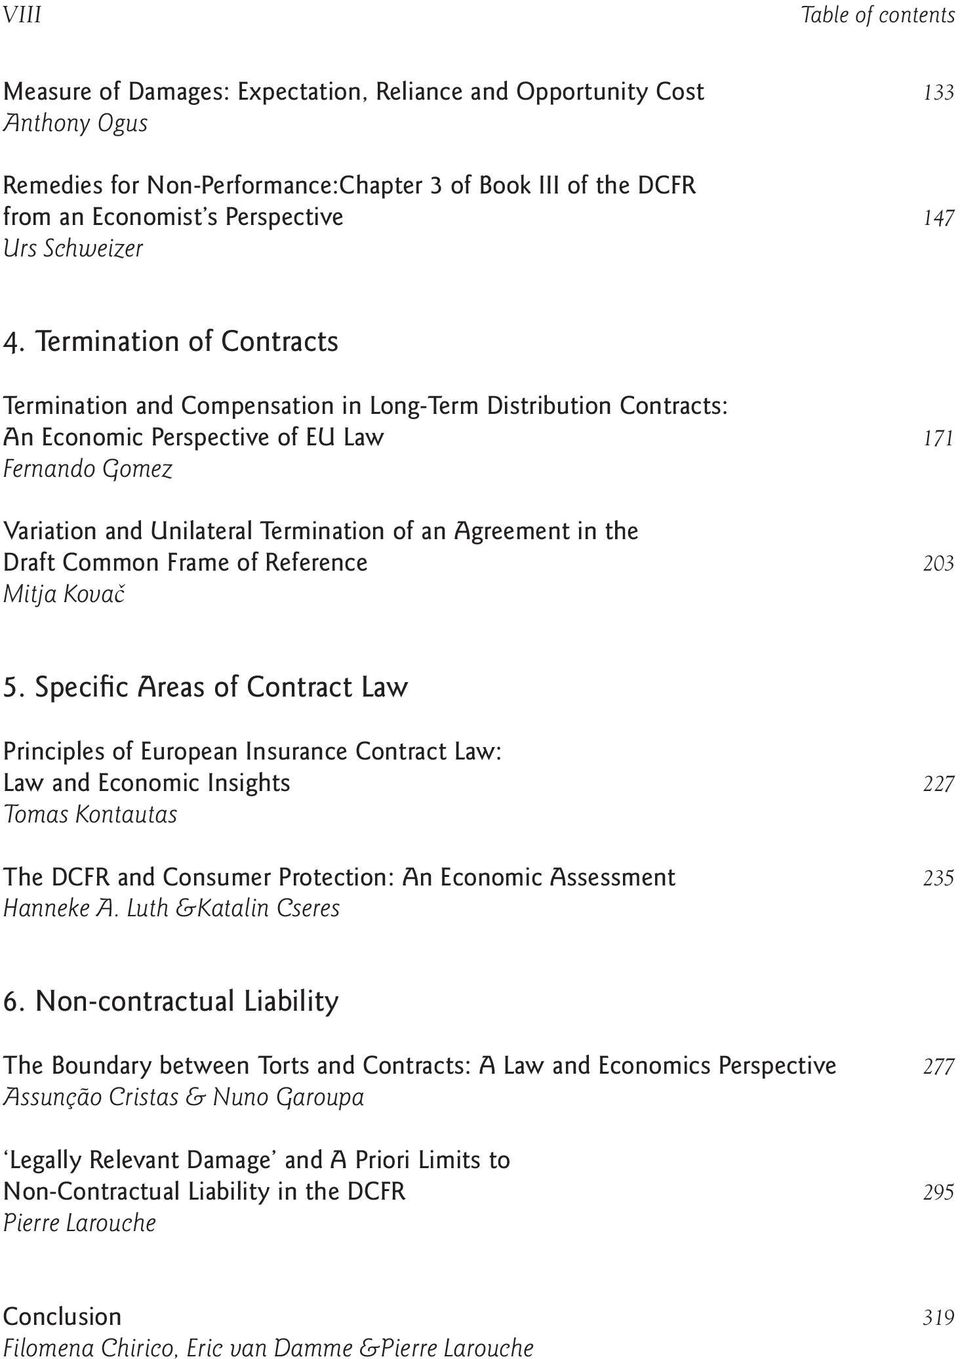 Termination of Contracts Termination and Compensation in Long-Term Distribution Contracts: An Economic Perspective of EU Law 171 Fernando Gomez Variation and Unilateral Termination of an Agreement in